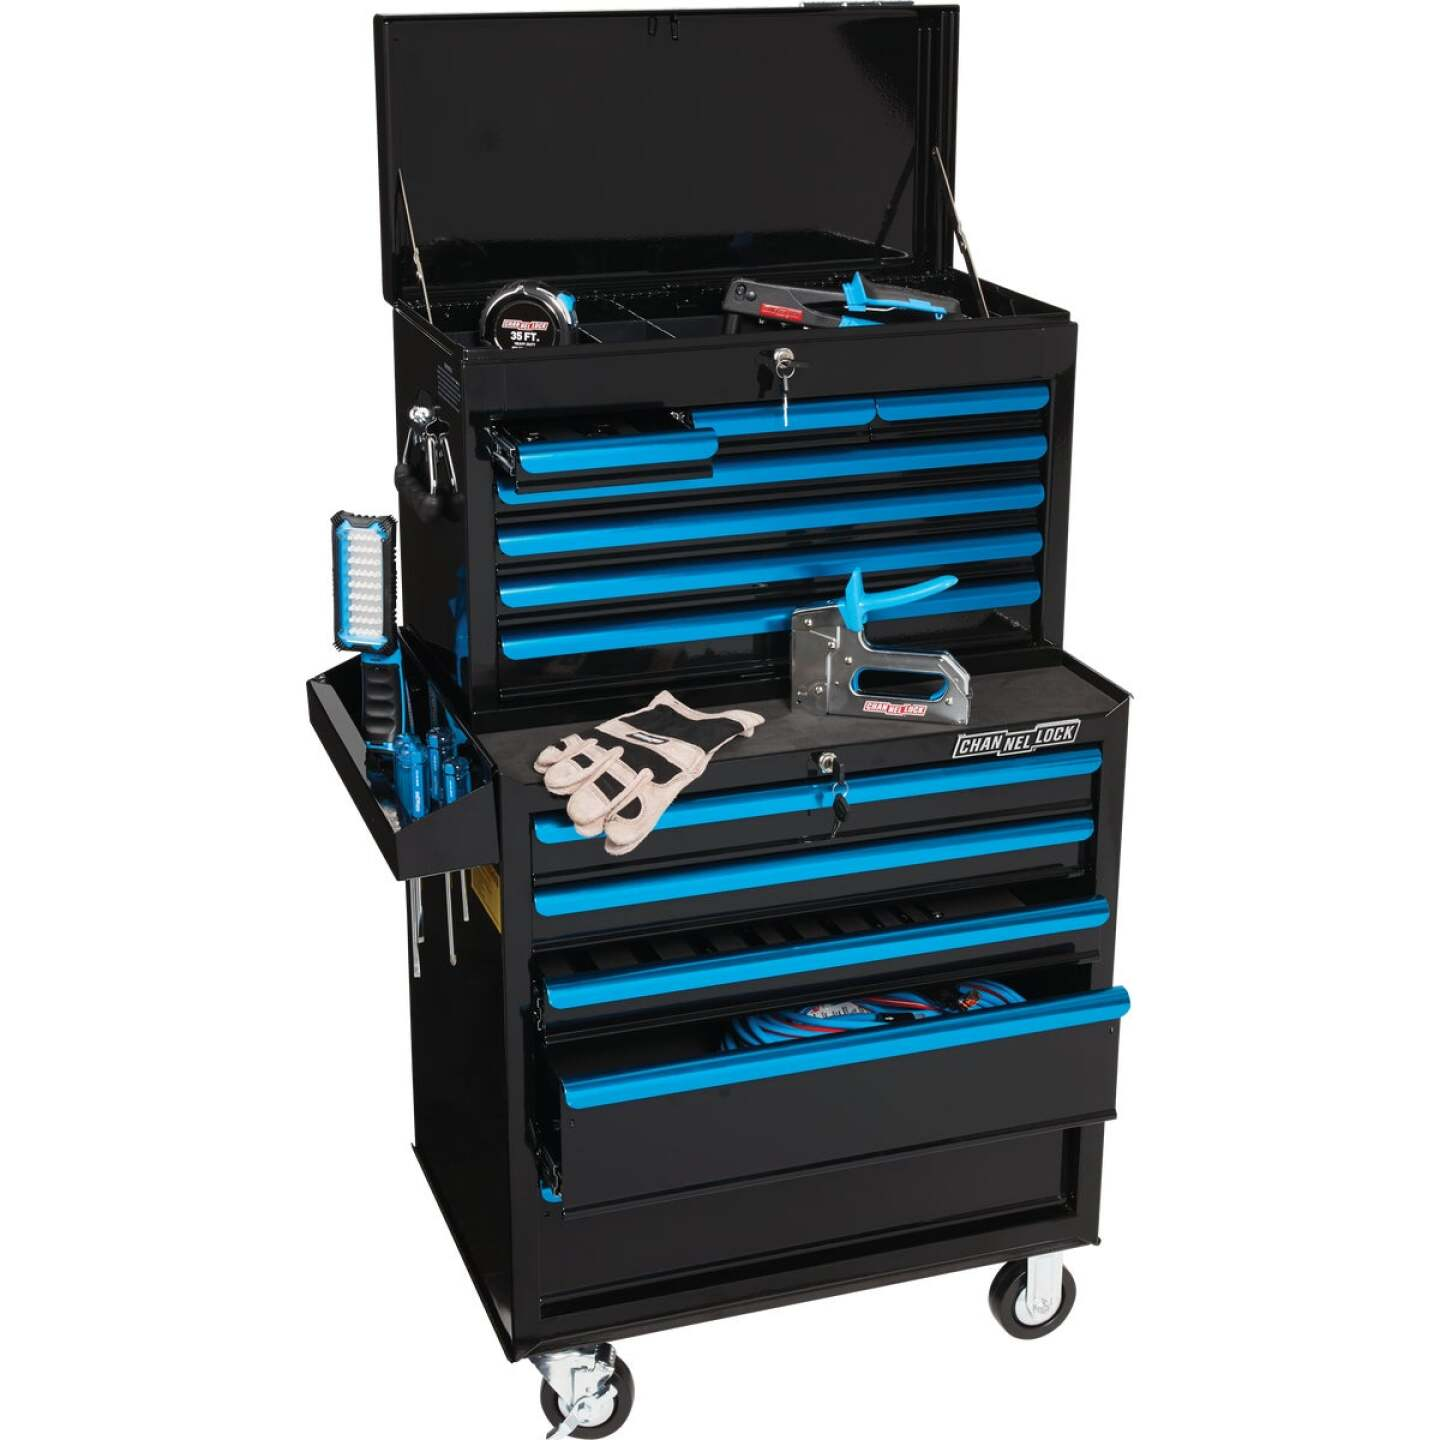 Channellock 26 In. 7-Drawer Black and Blue Tool Chest Image 2